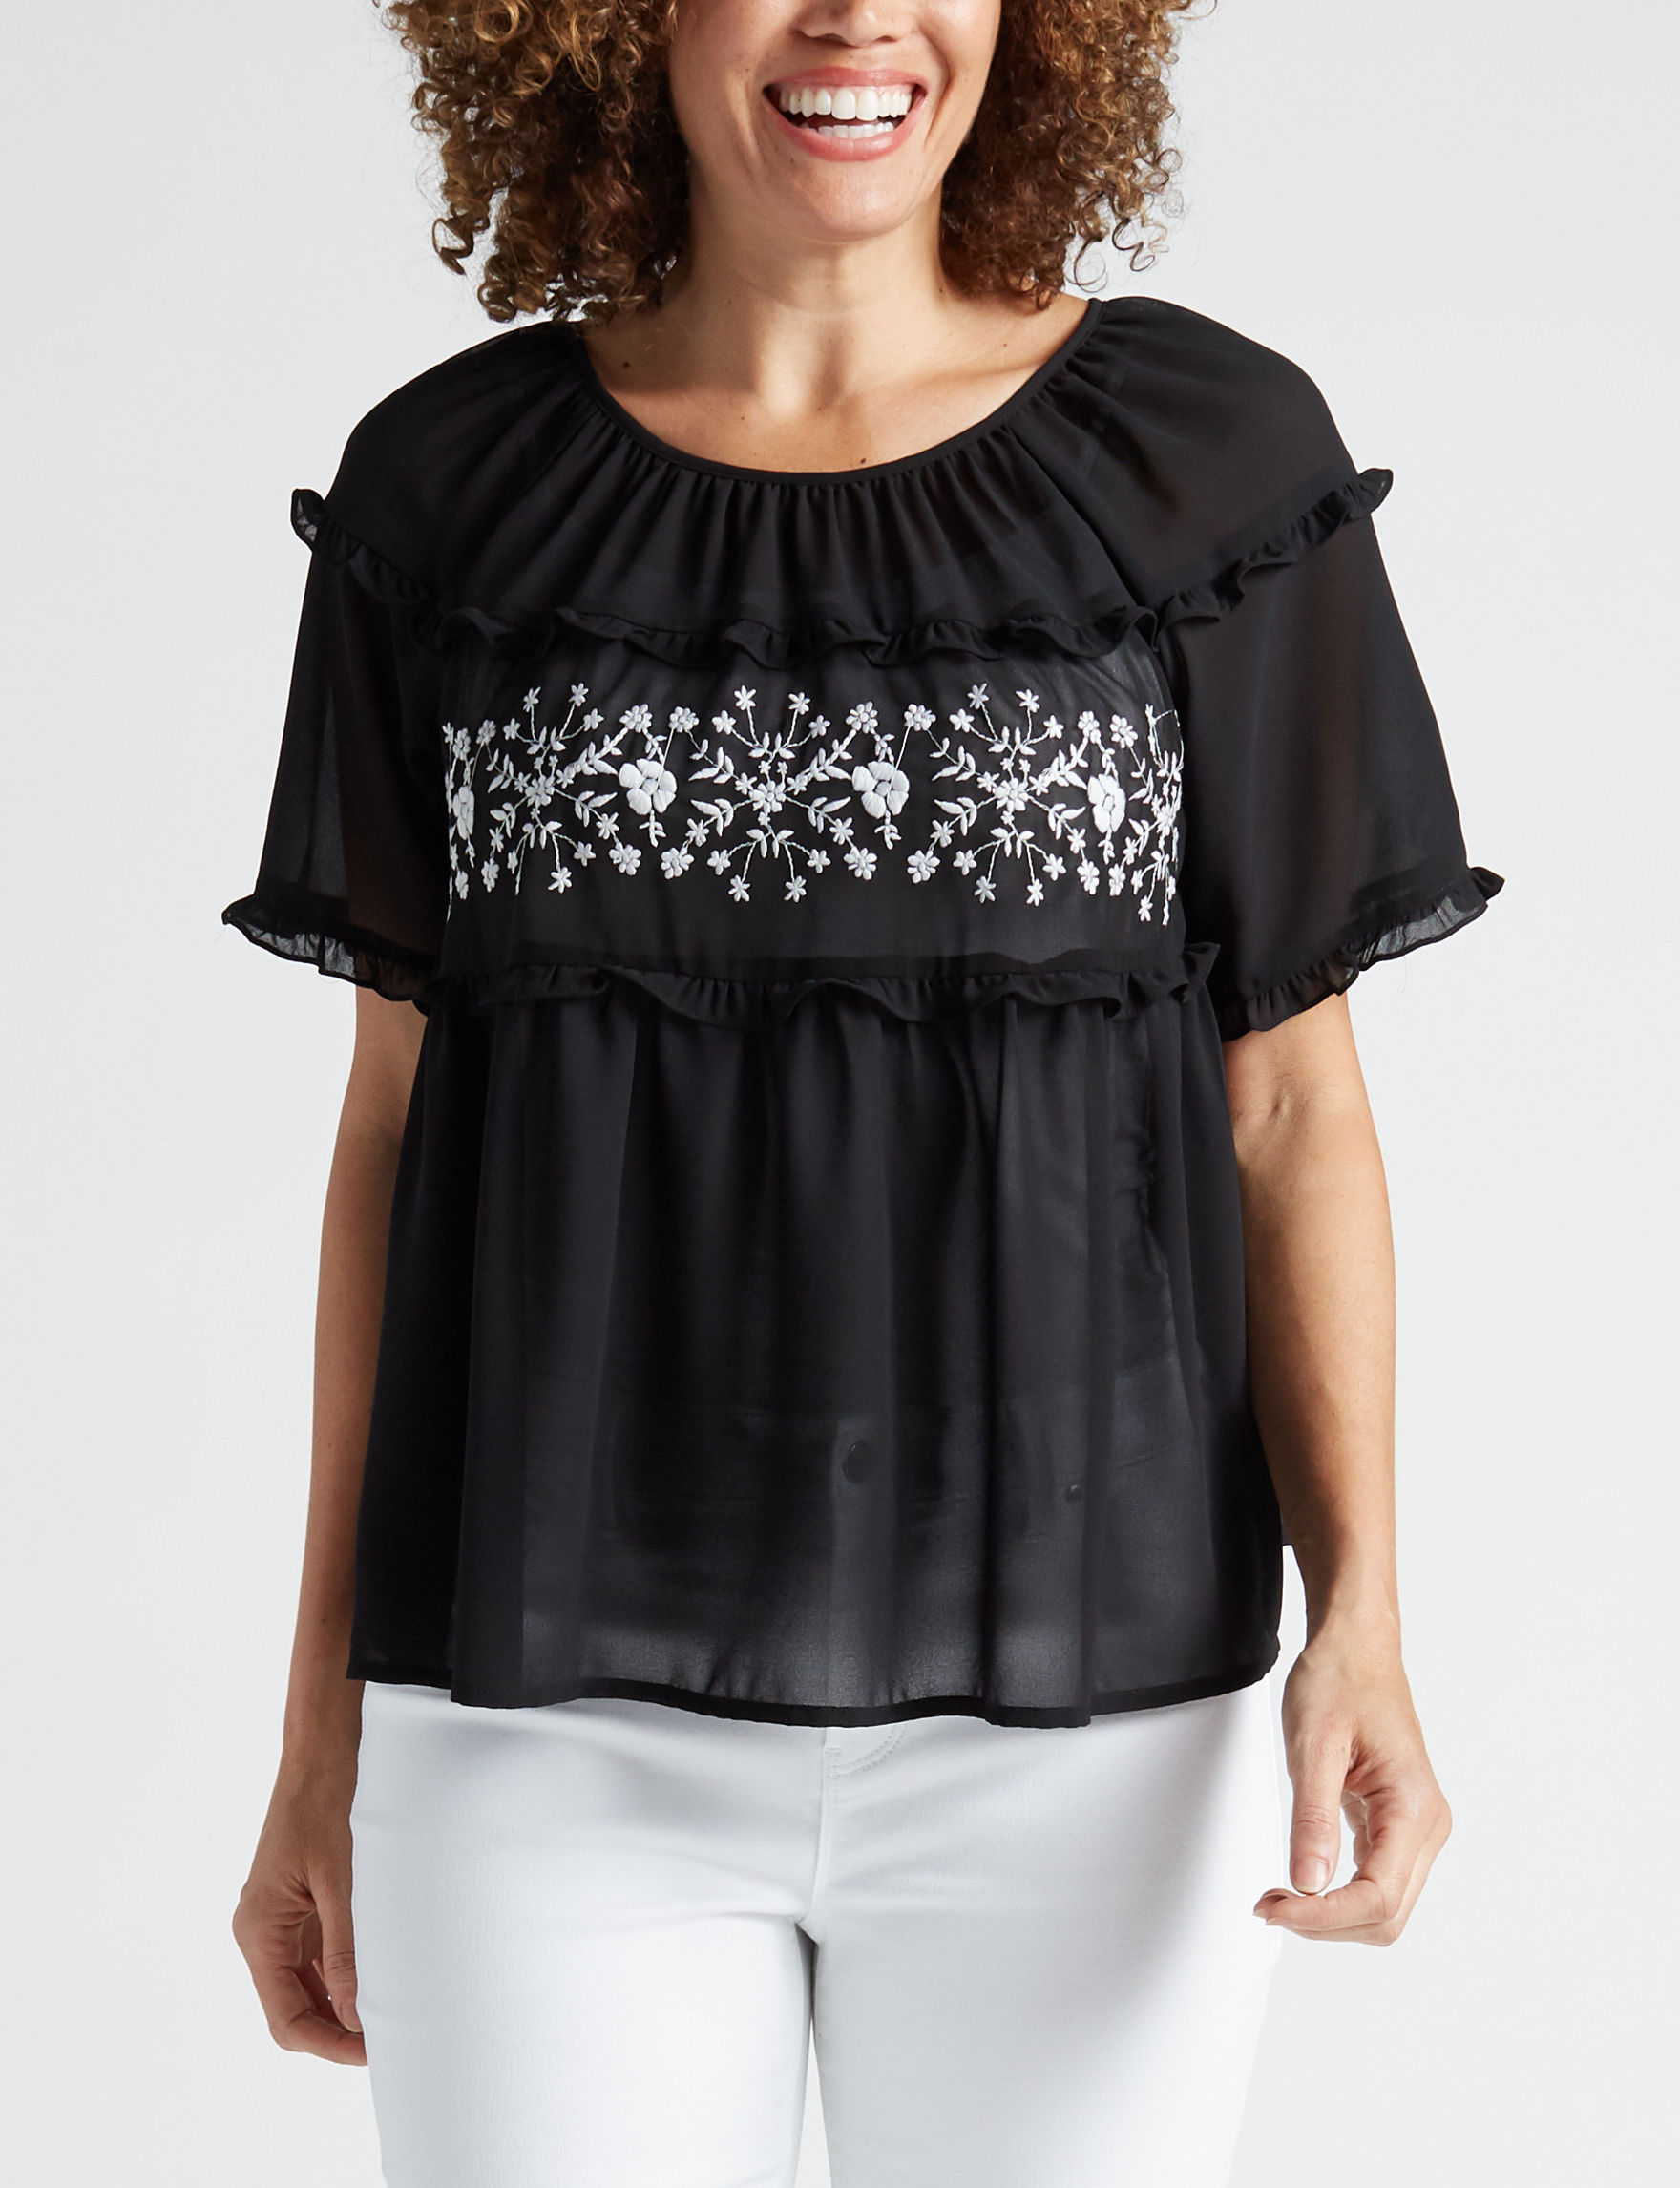 5fc76c74e7 Signature Studio Women's Embroidered Ruffle Top | Stage Stores